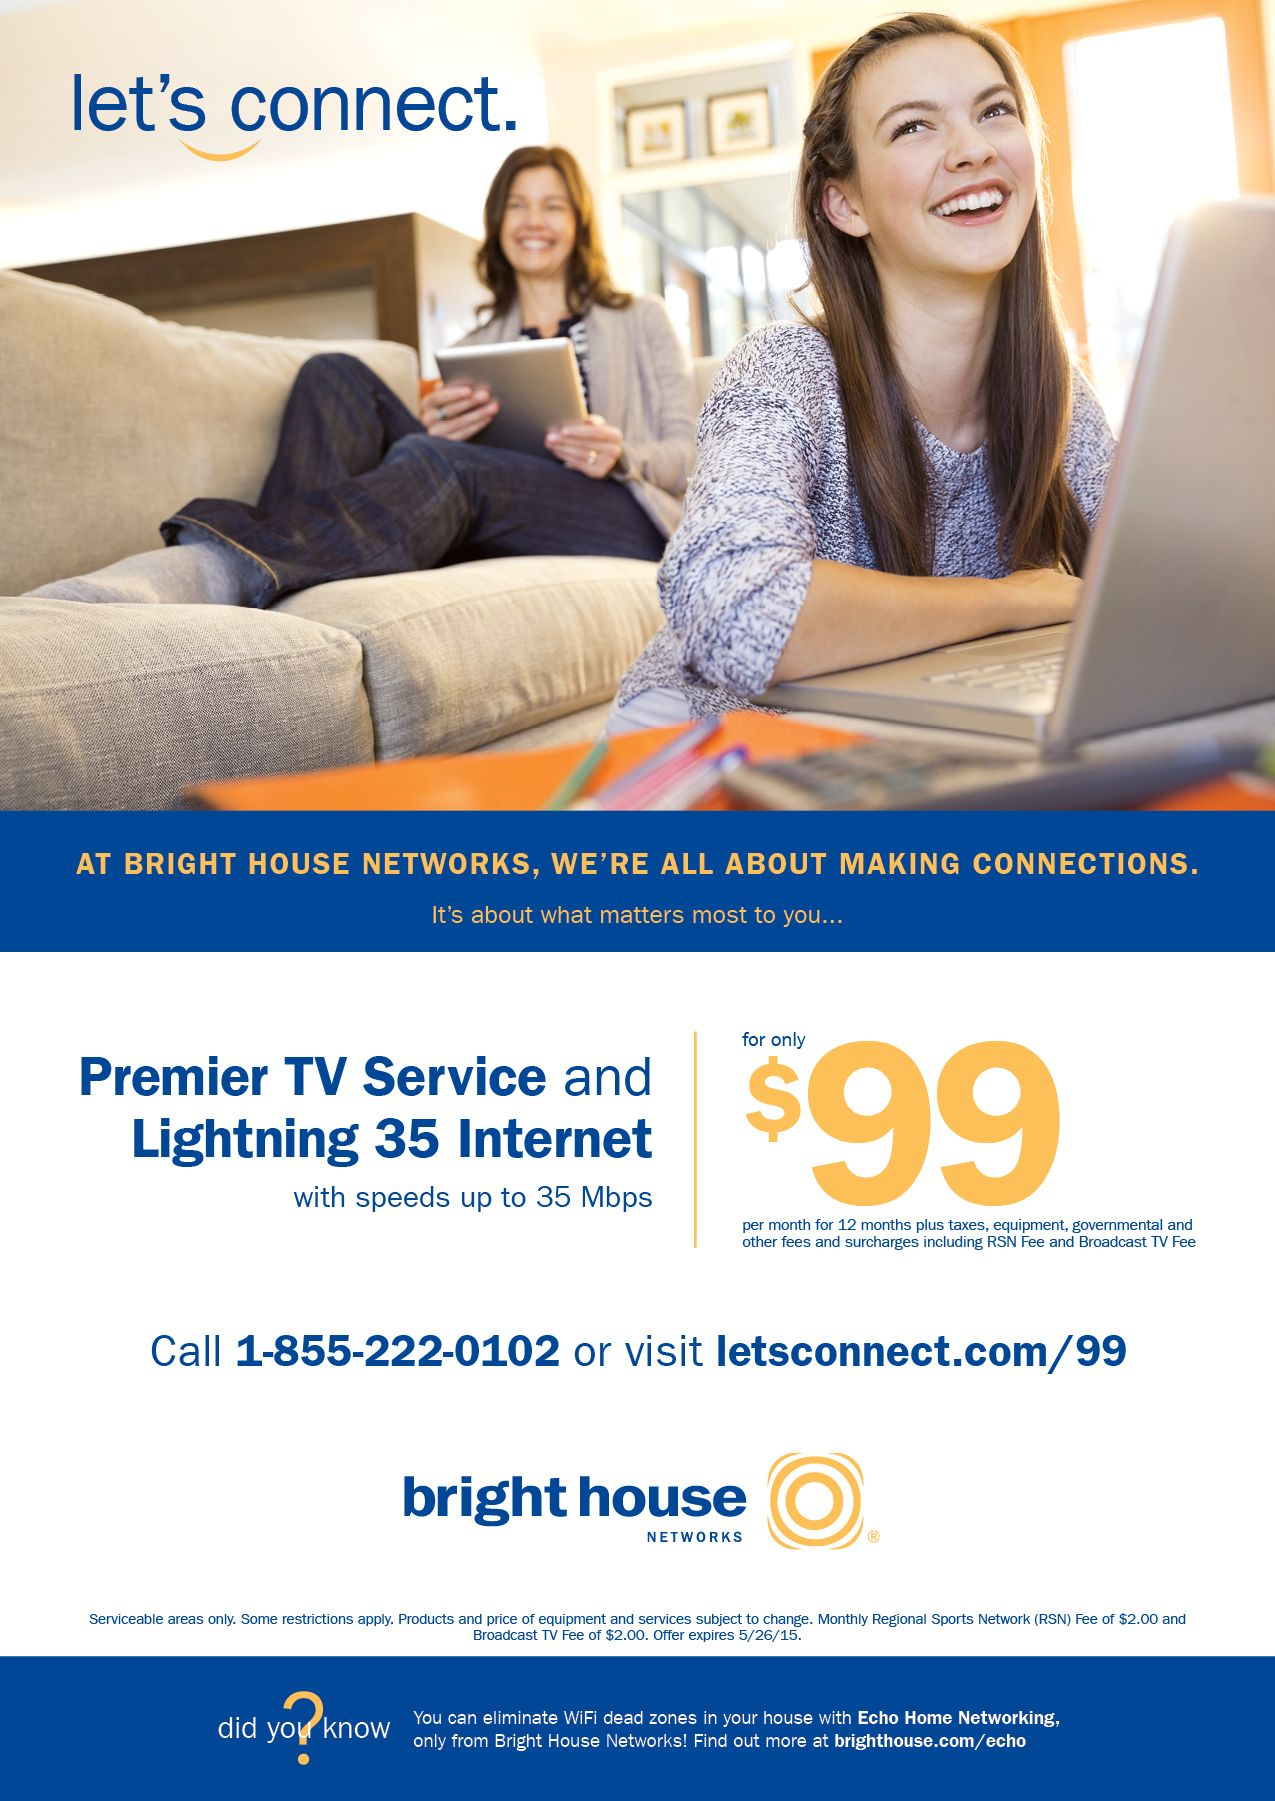 Lauras Design Studio, Designs Ad For Bright House Networks For